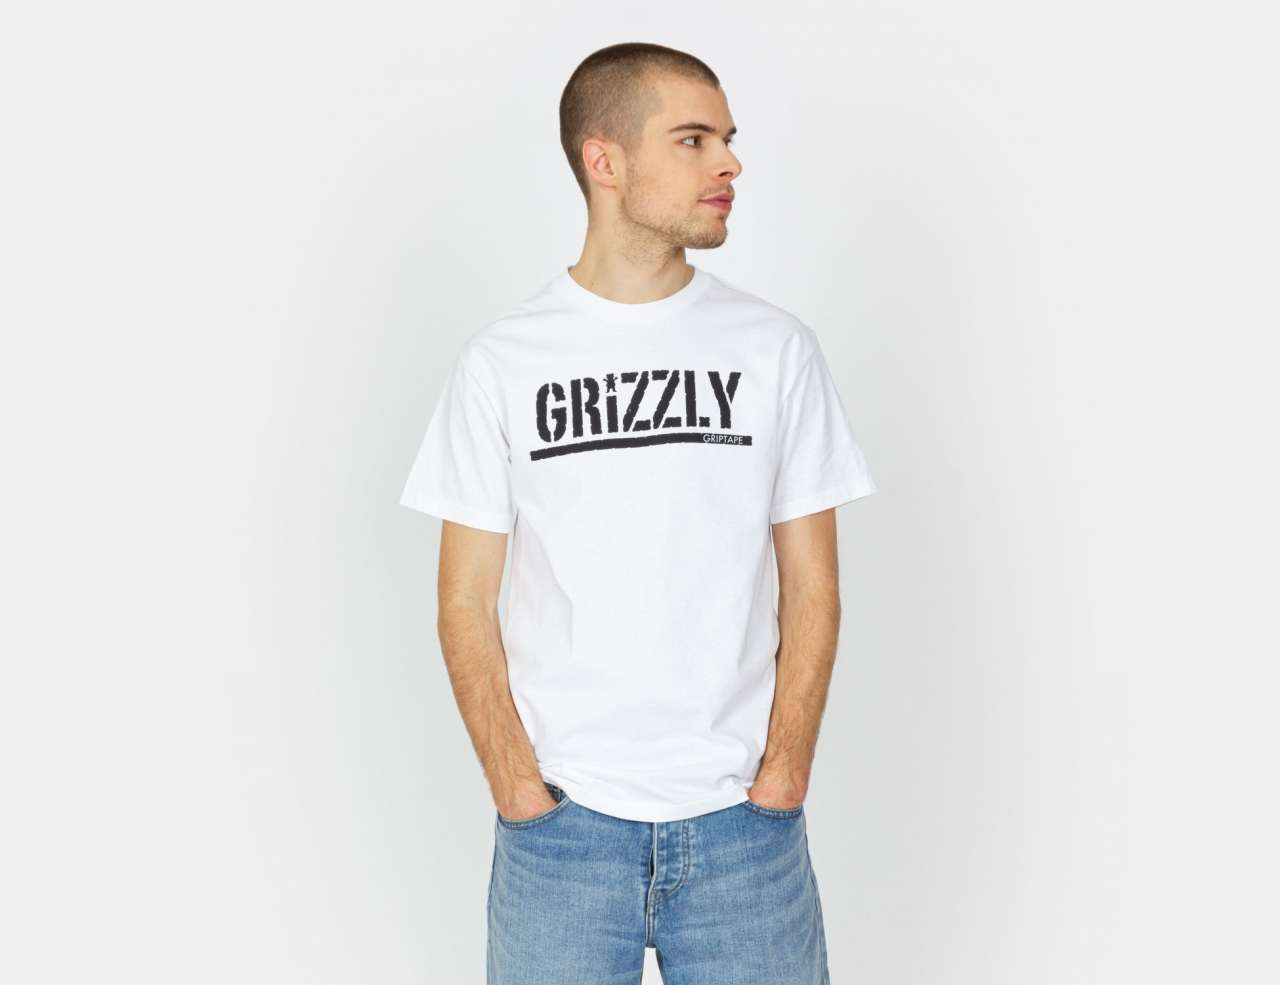 Grizzly Stamp Shirt - White / Black